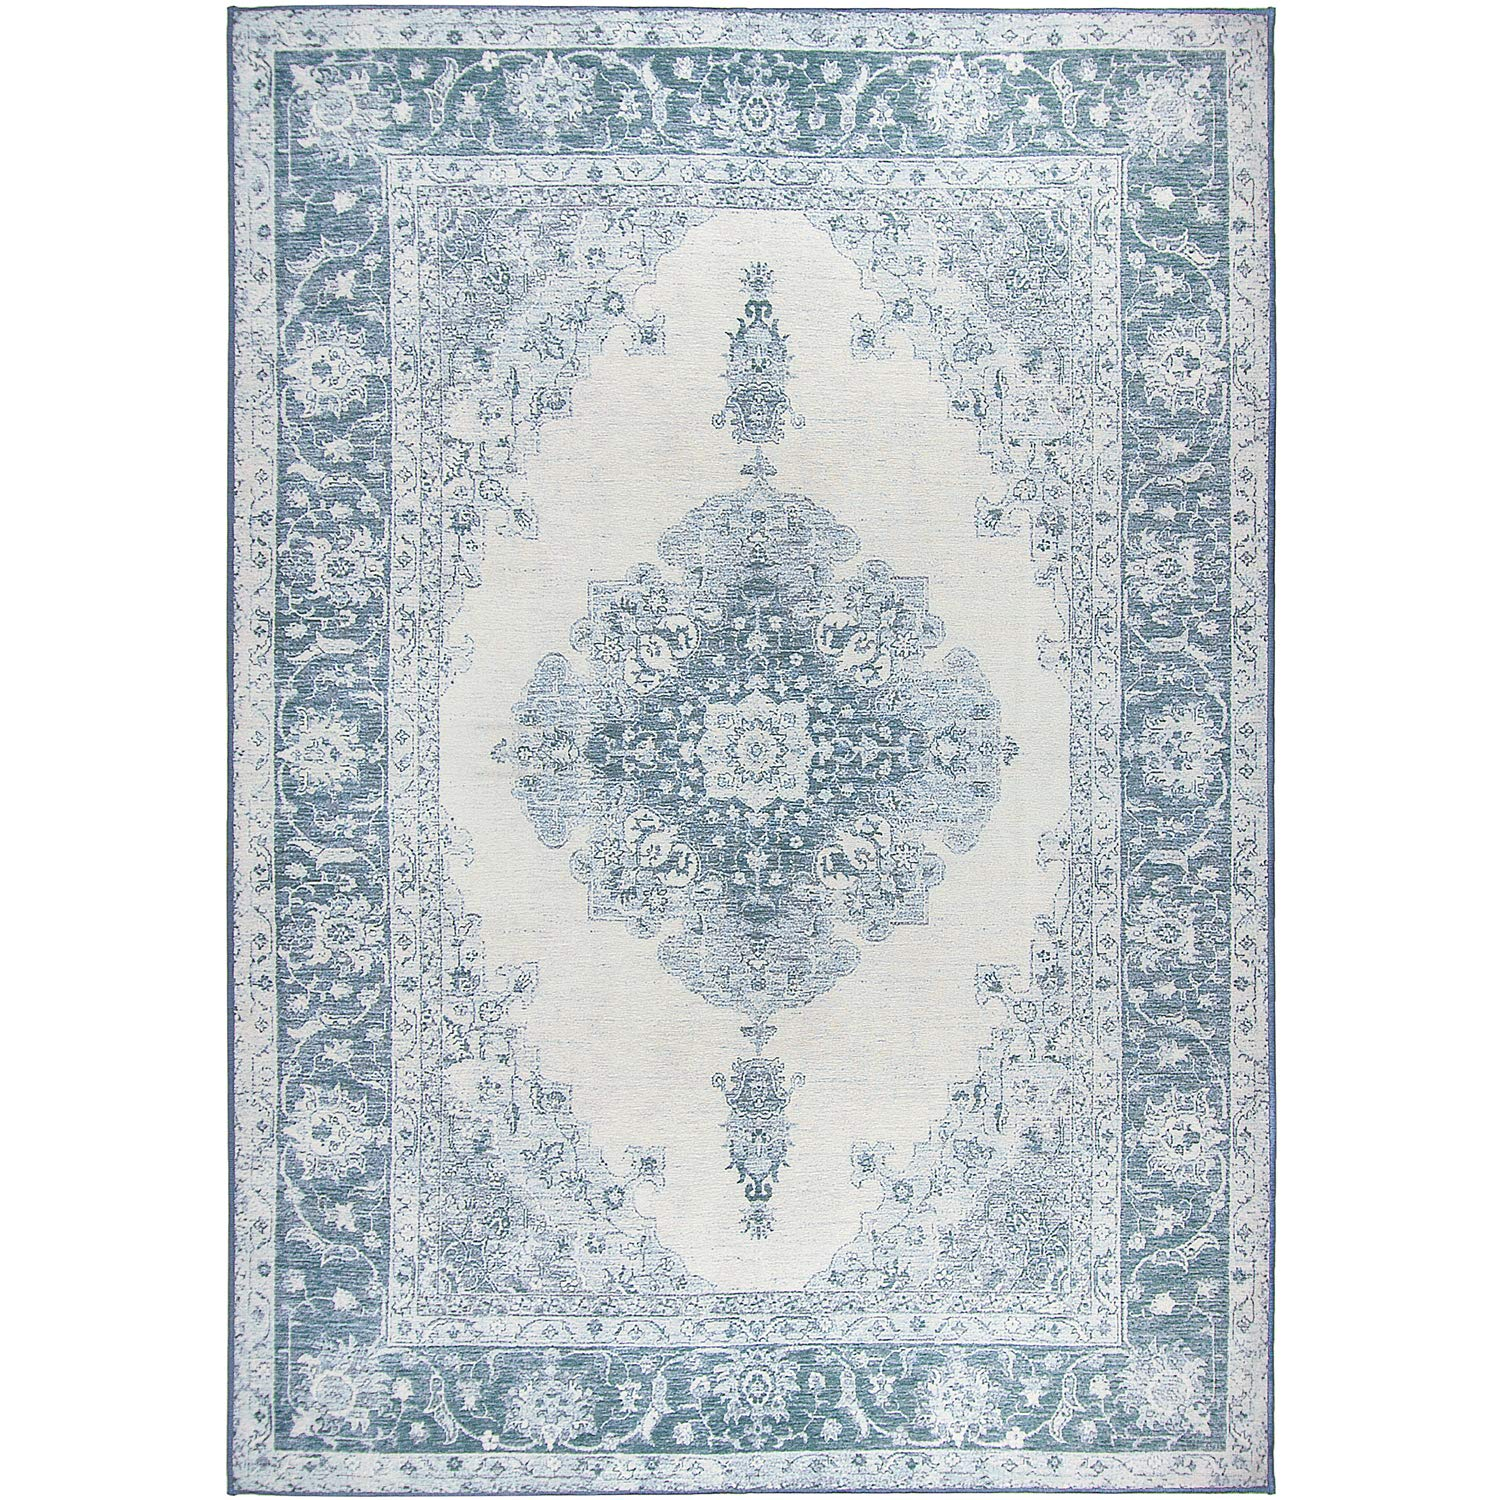 Washable Stain Resistant Indoor/Outdoor, Kids, Pets, and Dog Friendly Area Rug 5'x7' Parisa Blue